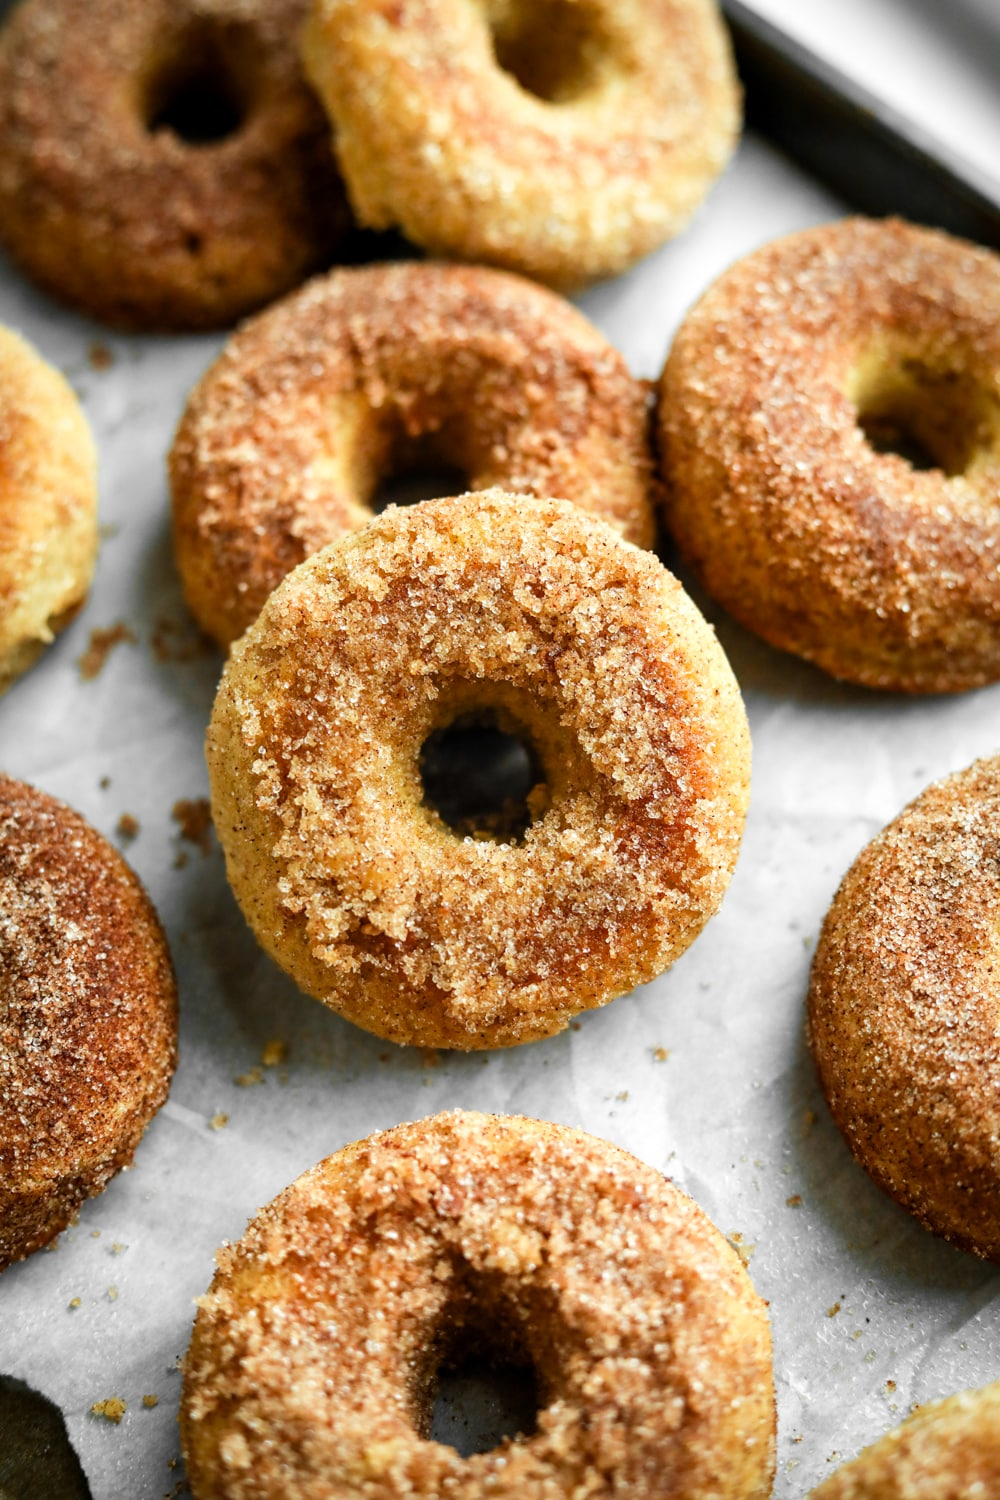 Donuts on a baking sheet lined with parchment paper.